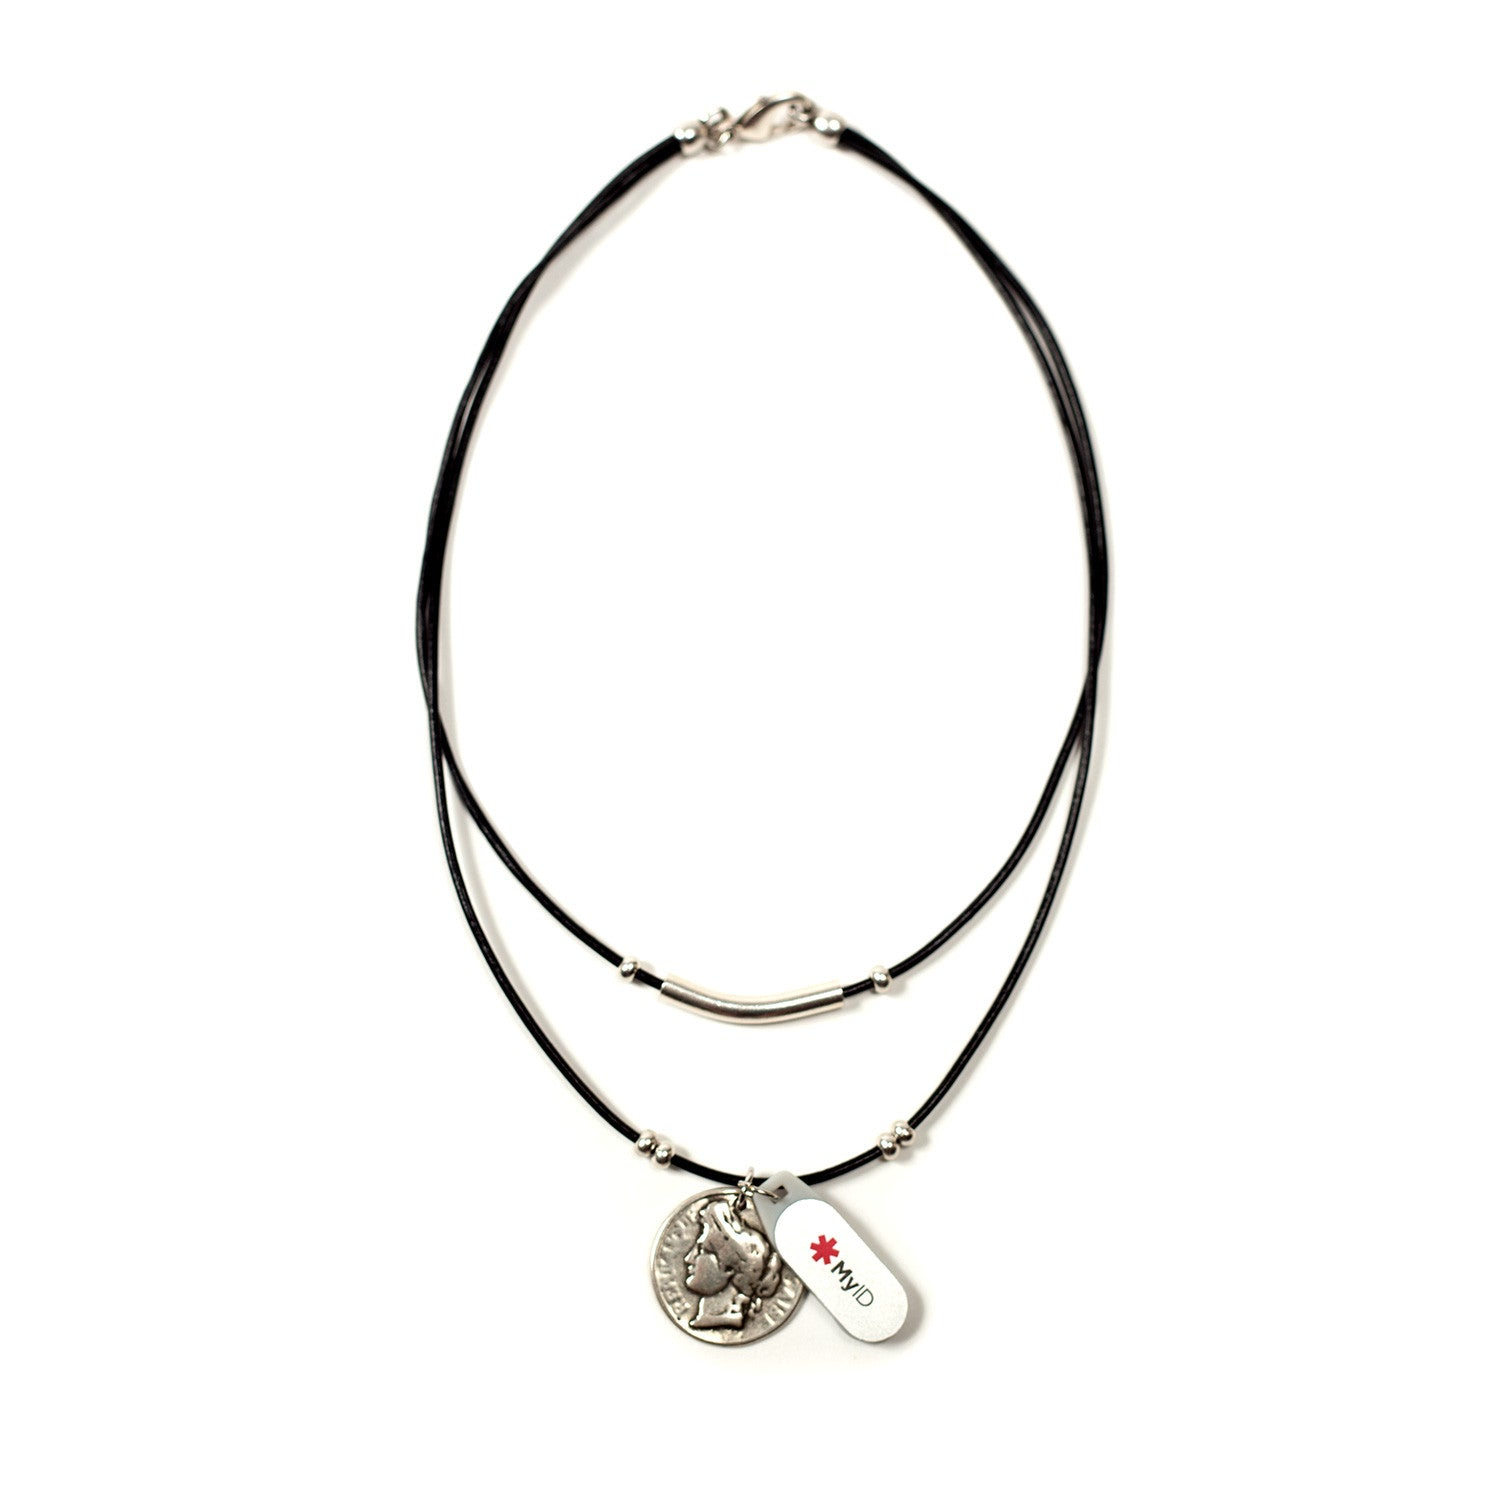 Double Strand Leather Medical ID Necklace